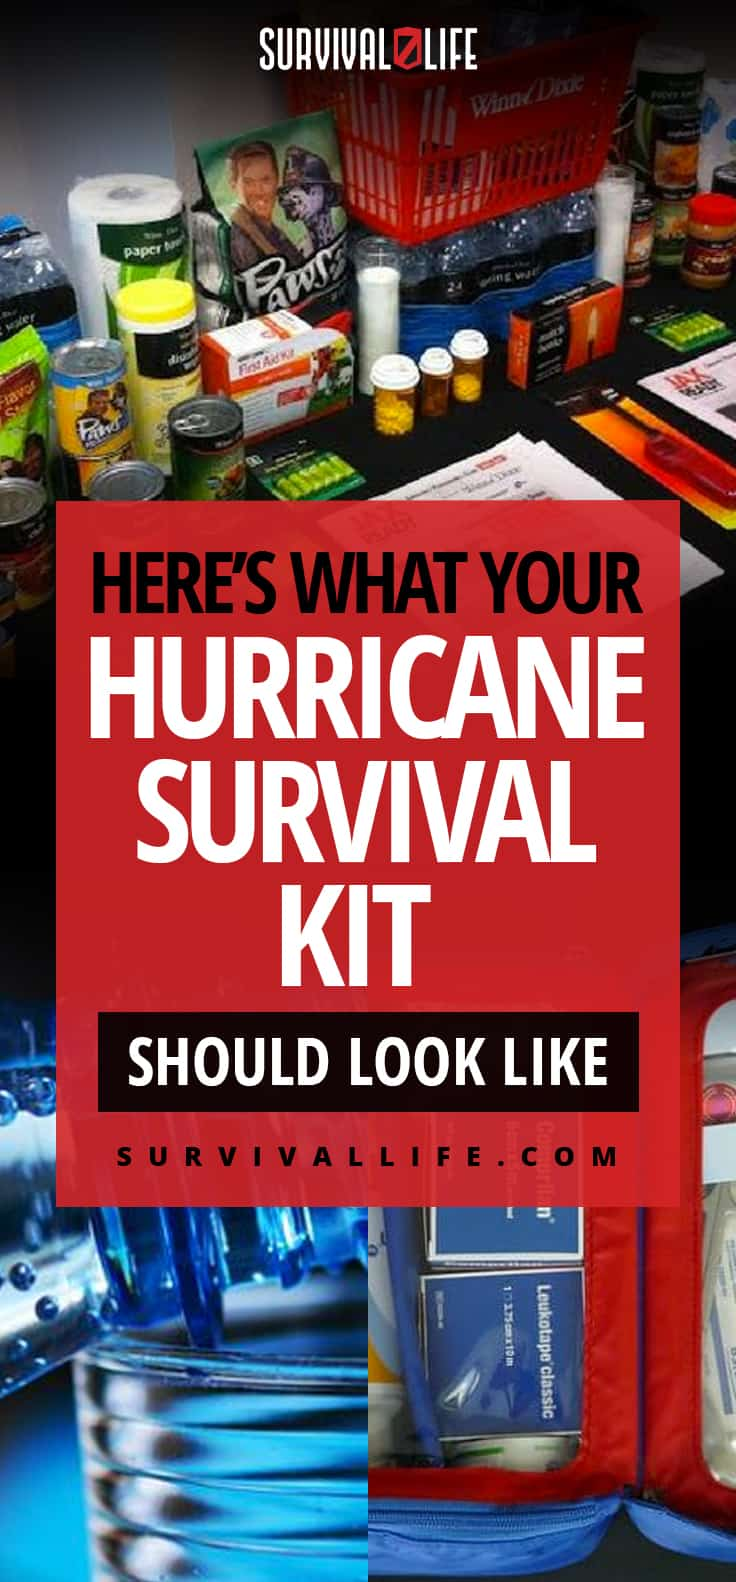 Here's What Your Hurricane Survival Kit Should Look Like